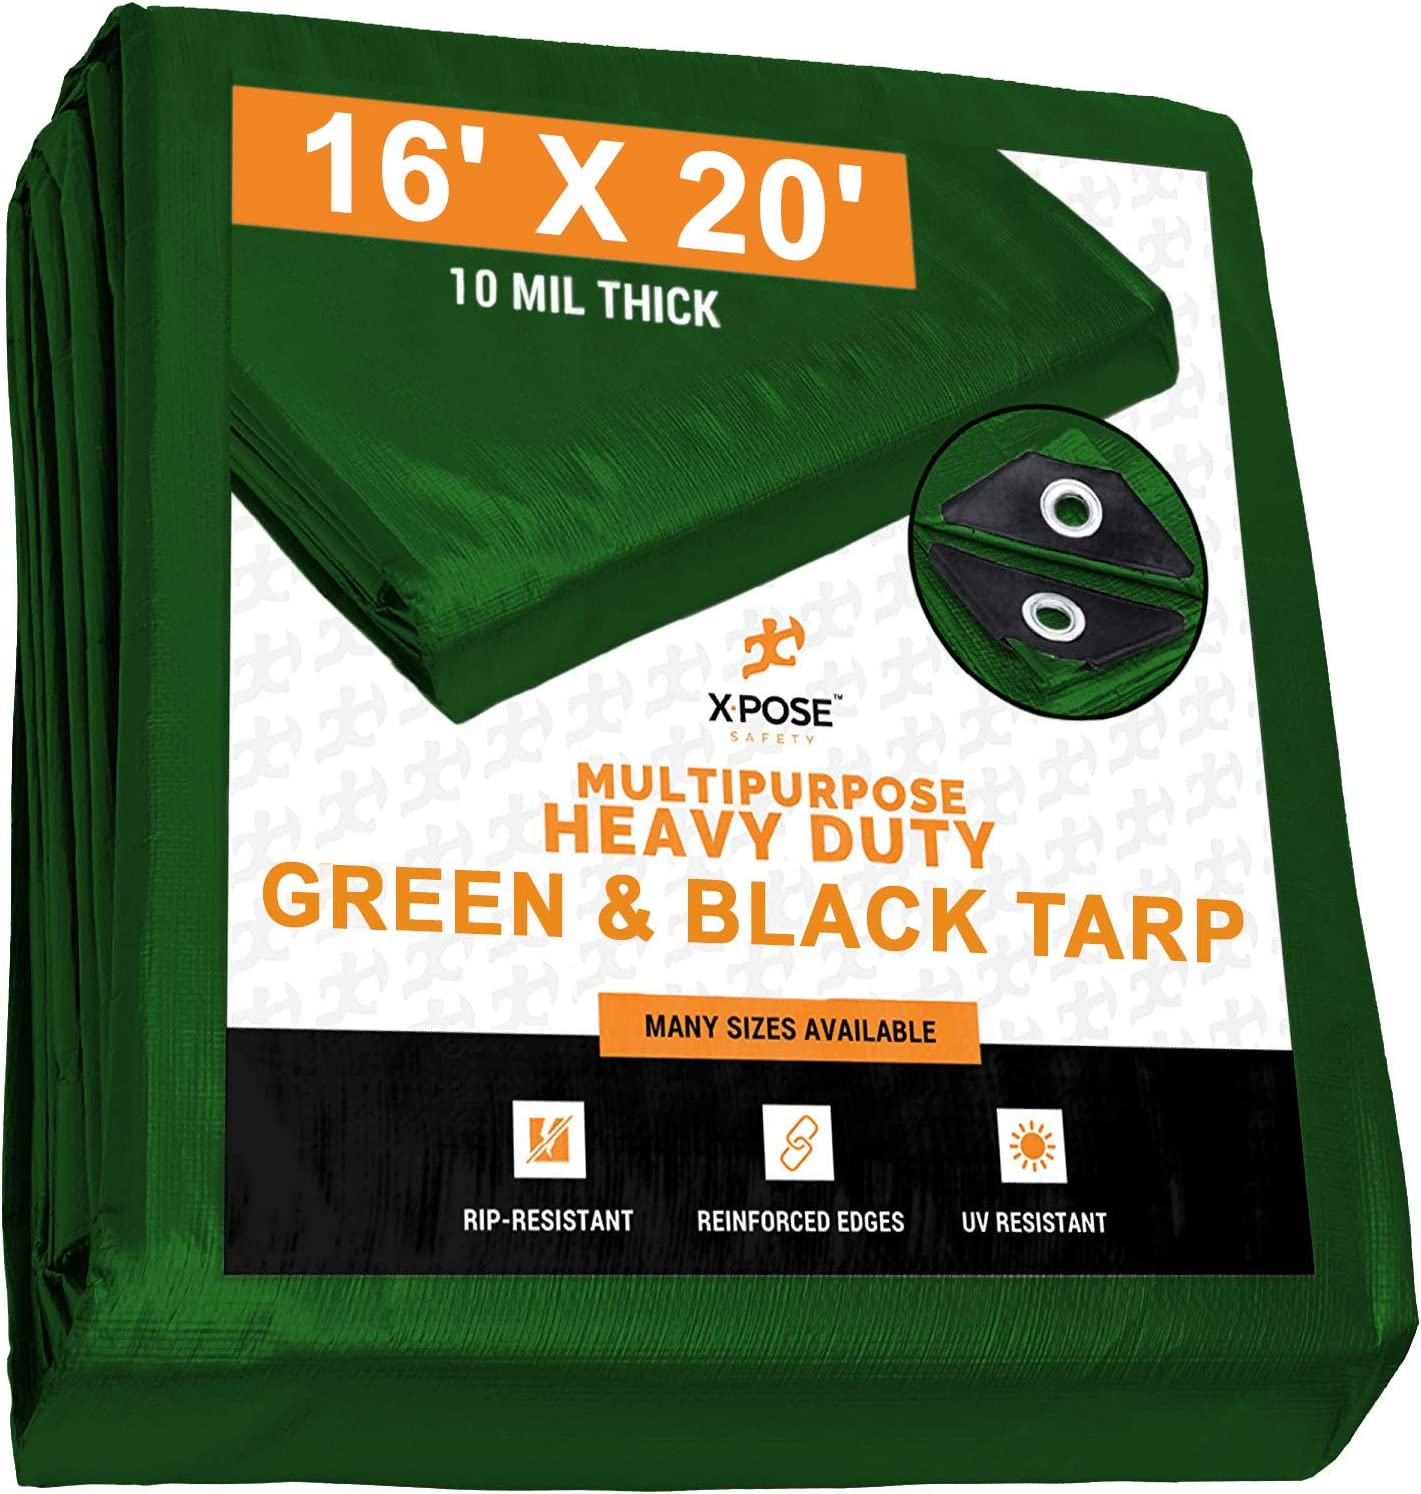 Heavy Duty Poly Tarp 10 x 20-10 Mil Thick Waterproof Reversible Silver and Black Rustproof Grommets Laminated Coating UV Blocking Protective Cover by Xpose Safety